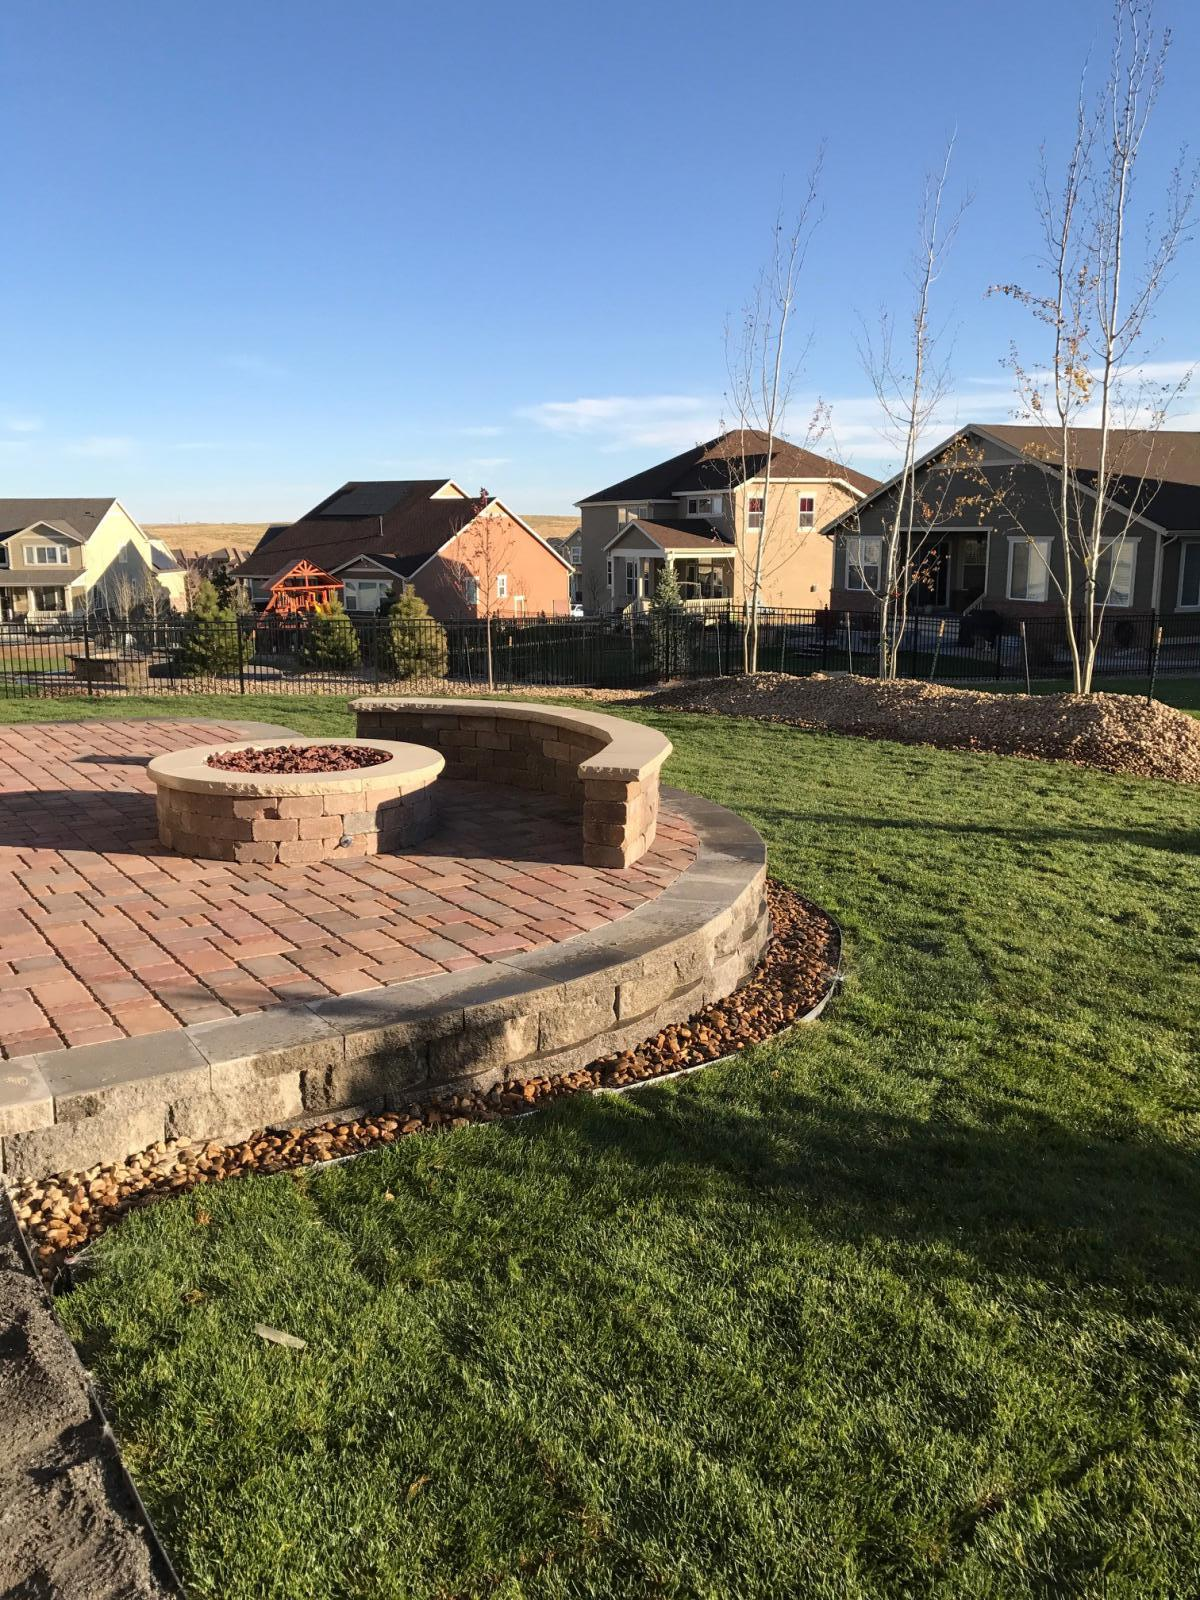 greenwood village sprinkler service and landscaping